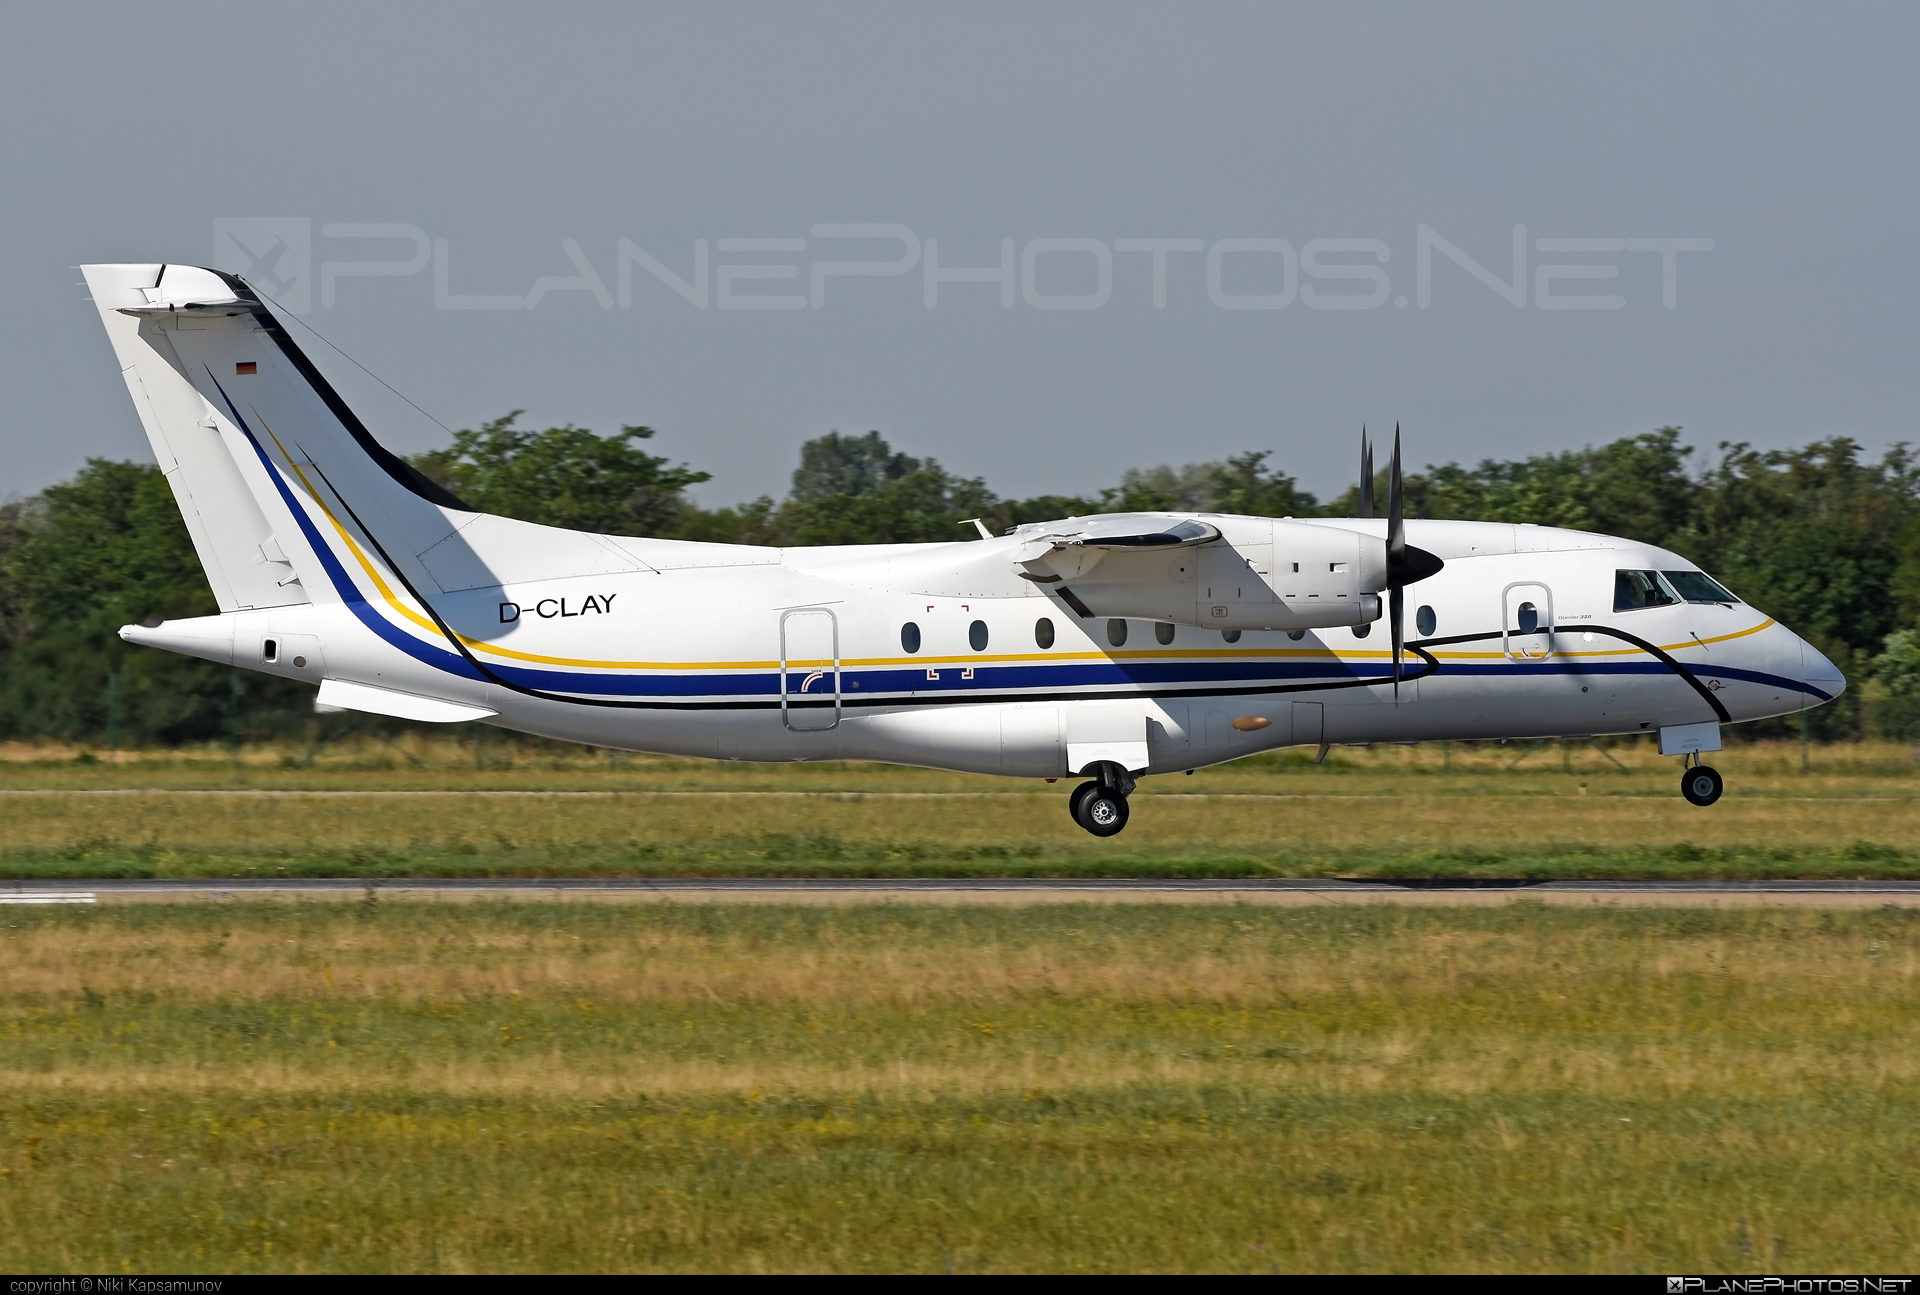 Dornier 328-110 - D-CLAY operated by Private Wings #dornier